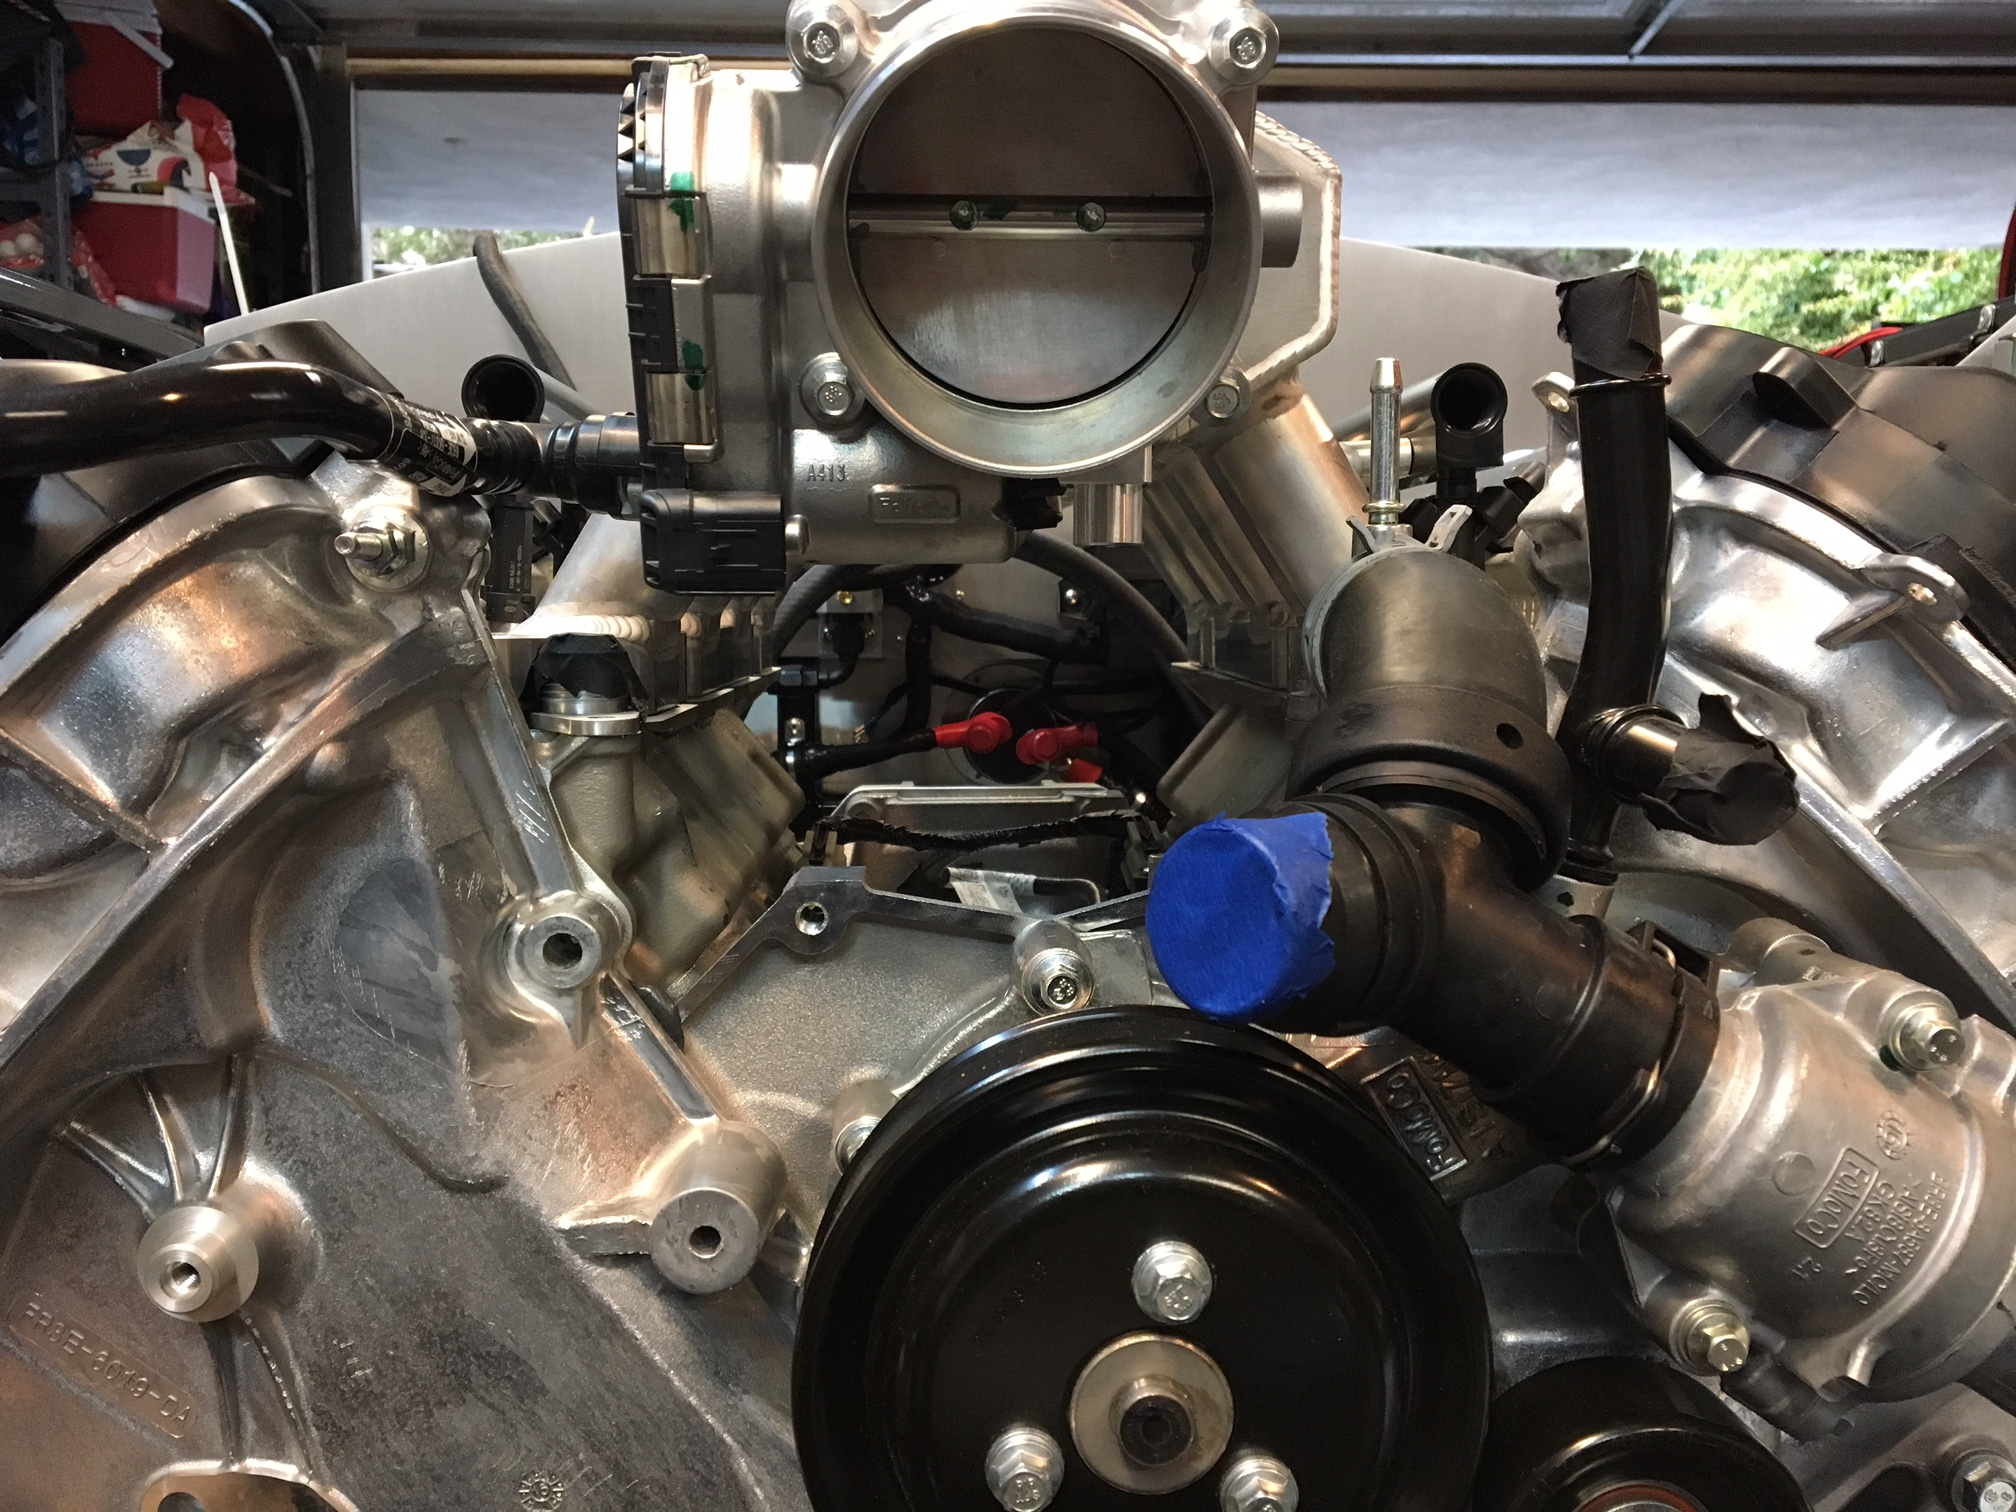 Steve's MK IV Coyote Build - Page 2